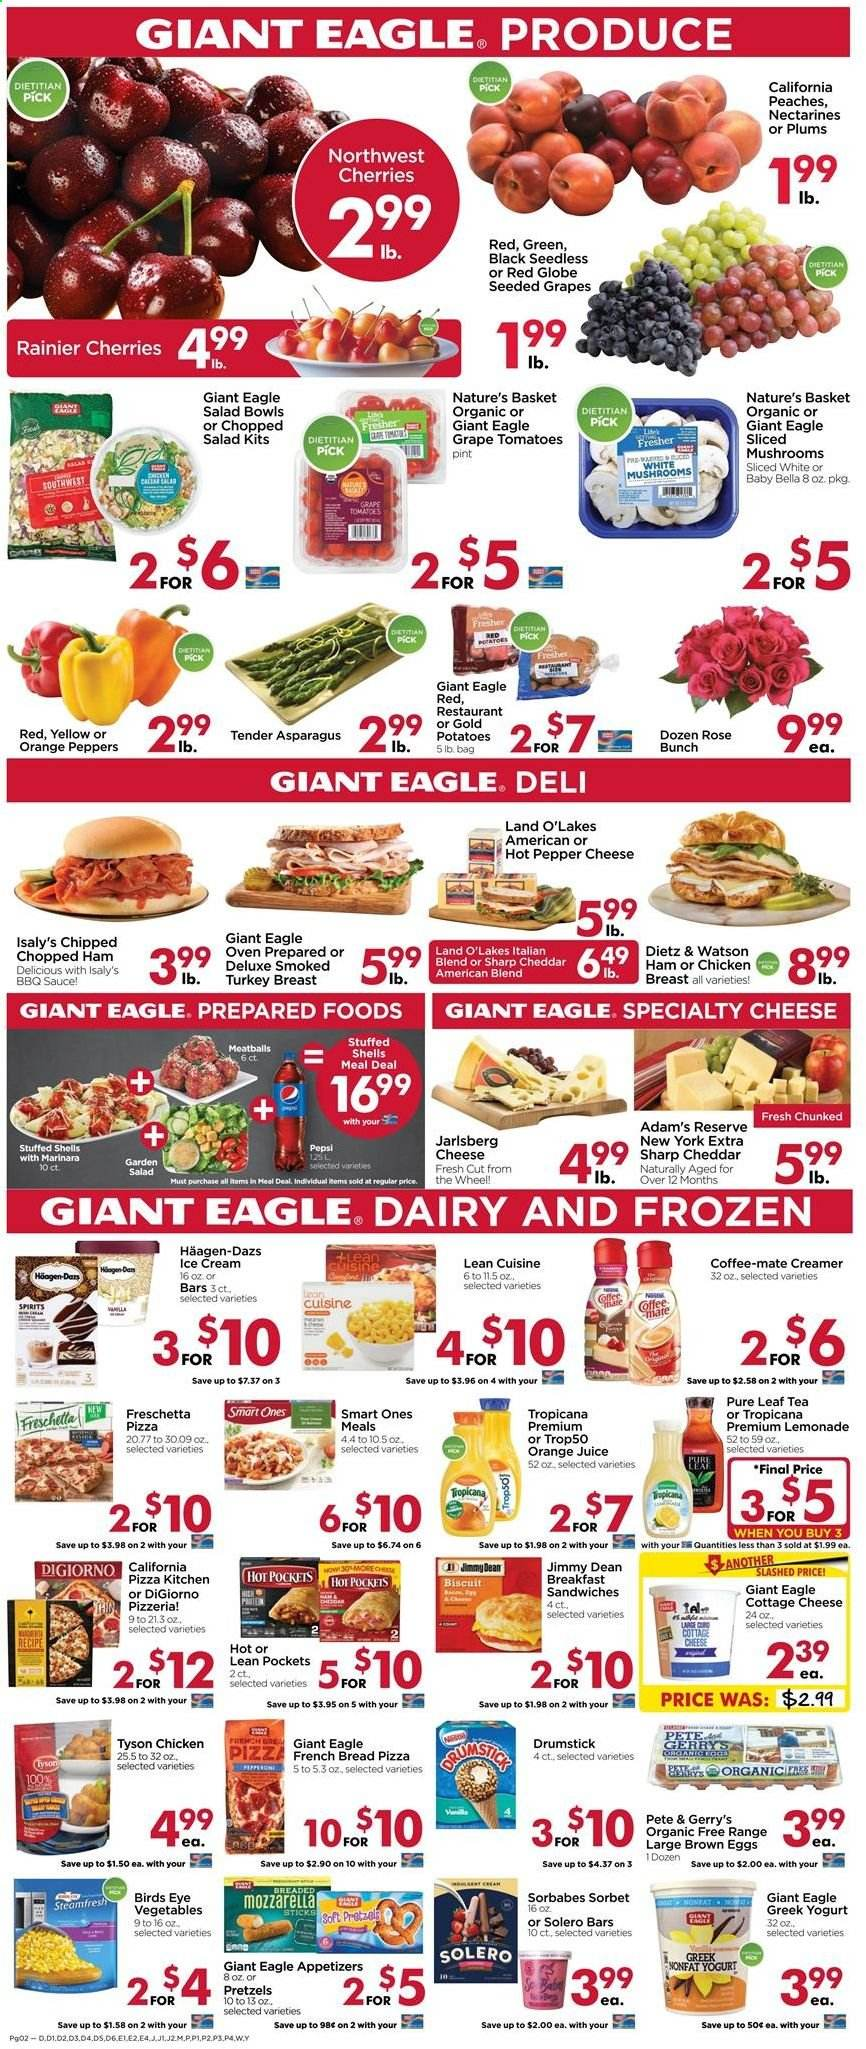 Giant Eagle Flyer  - 07.11.2019 - 07.17.2019. Page 2.